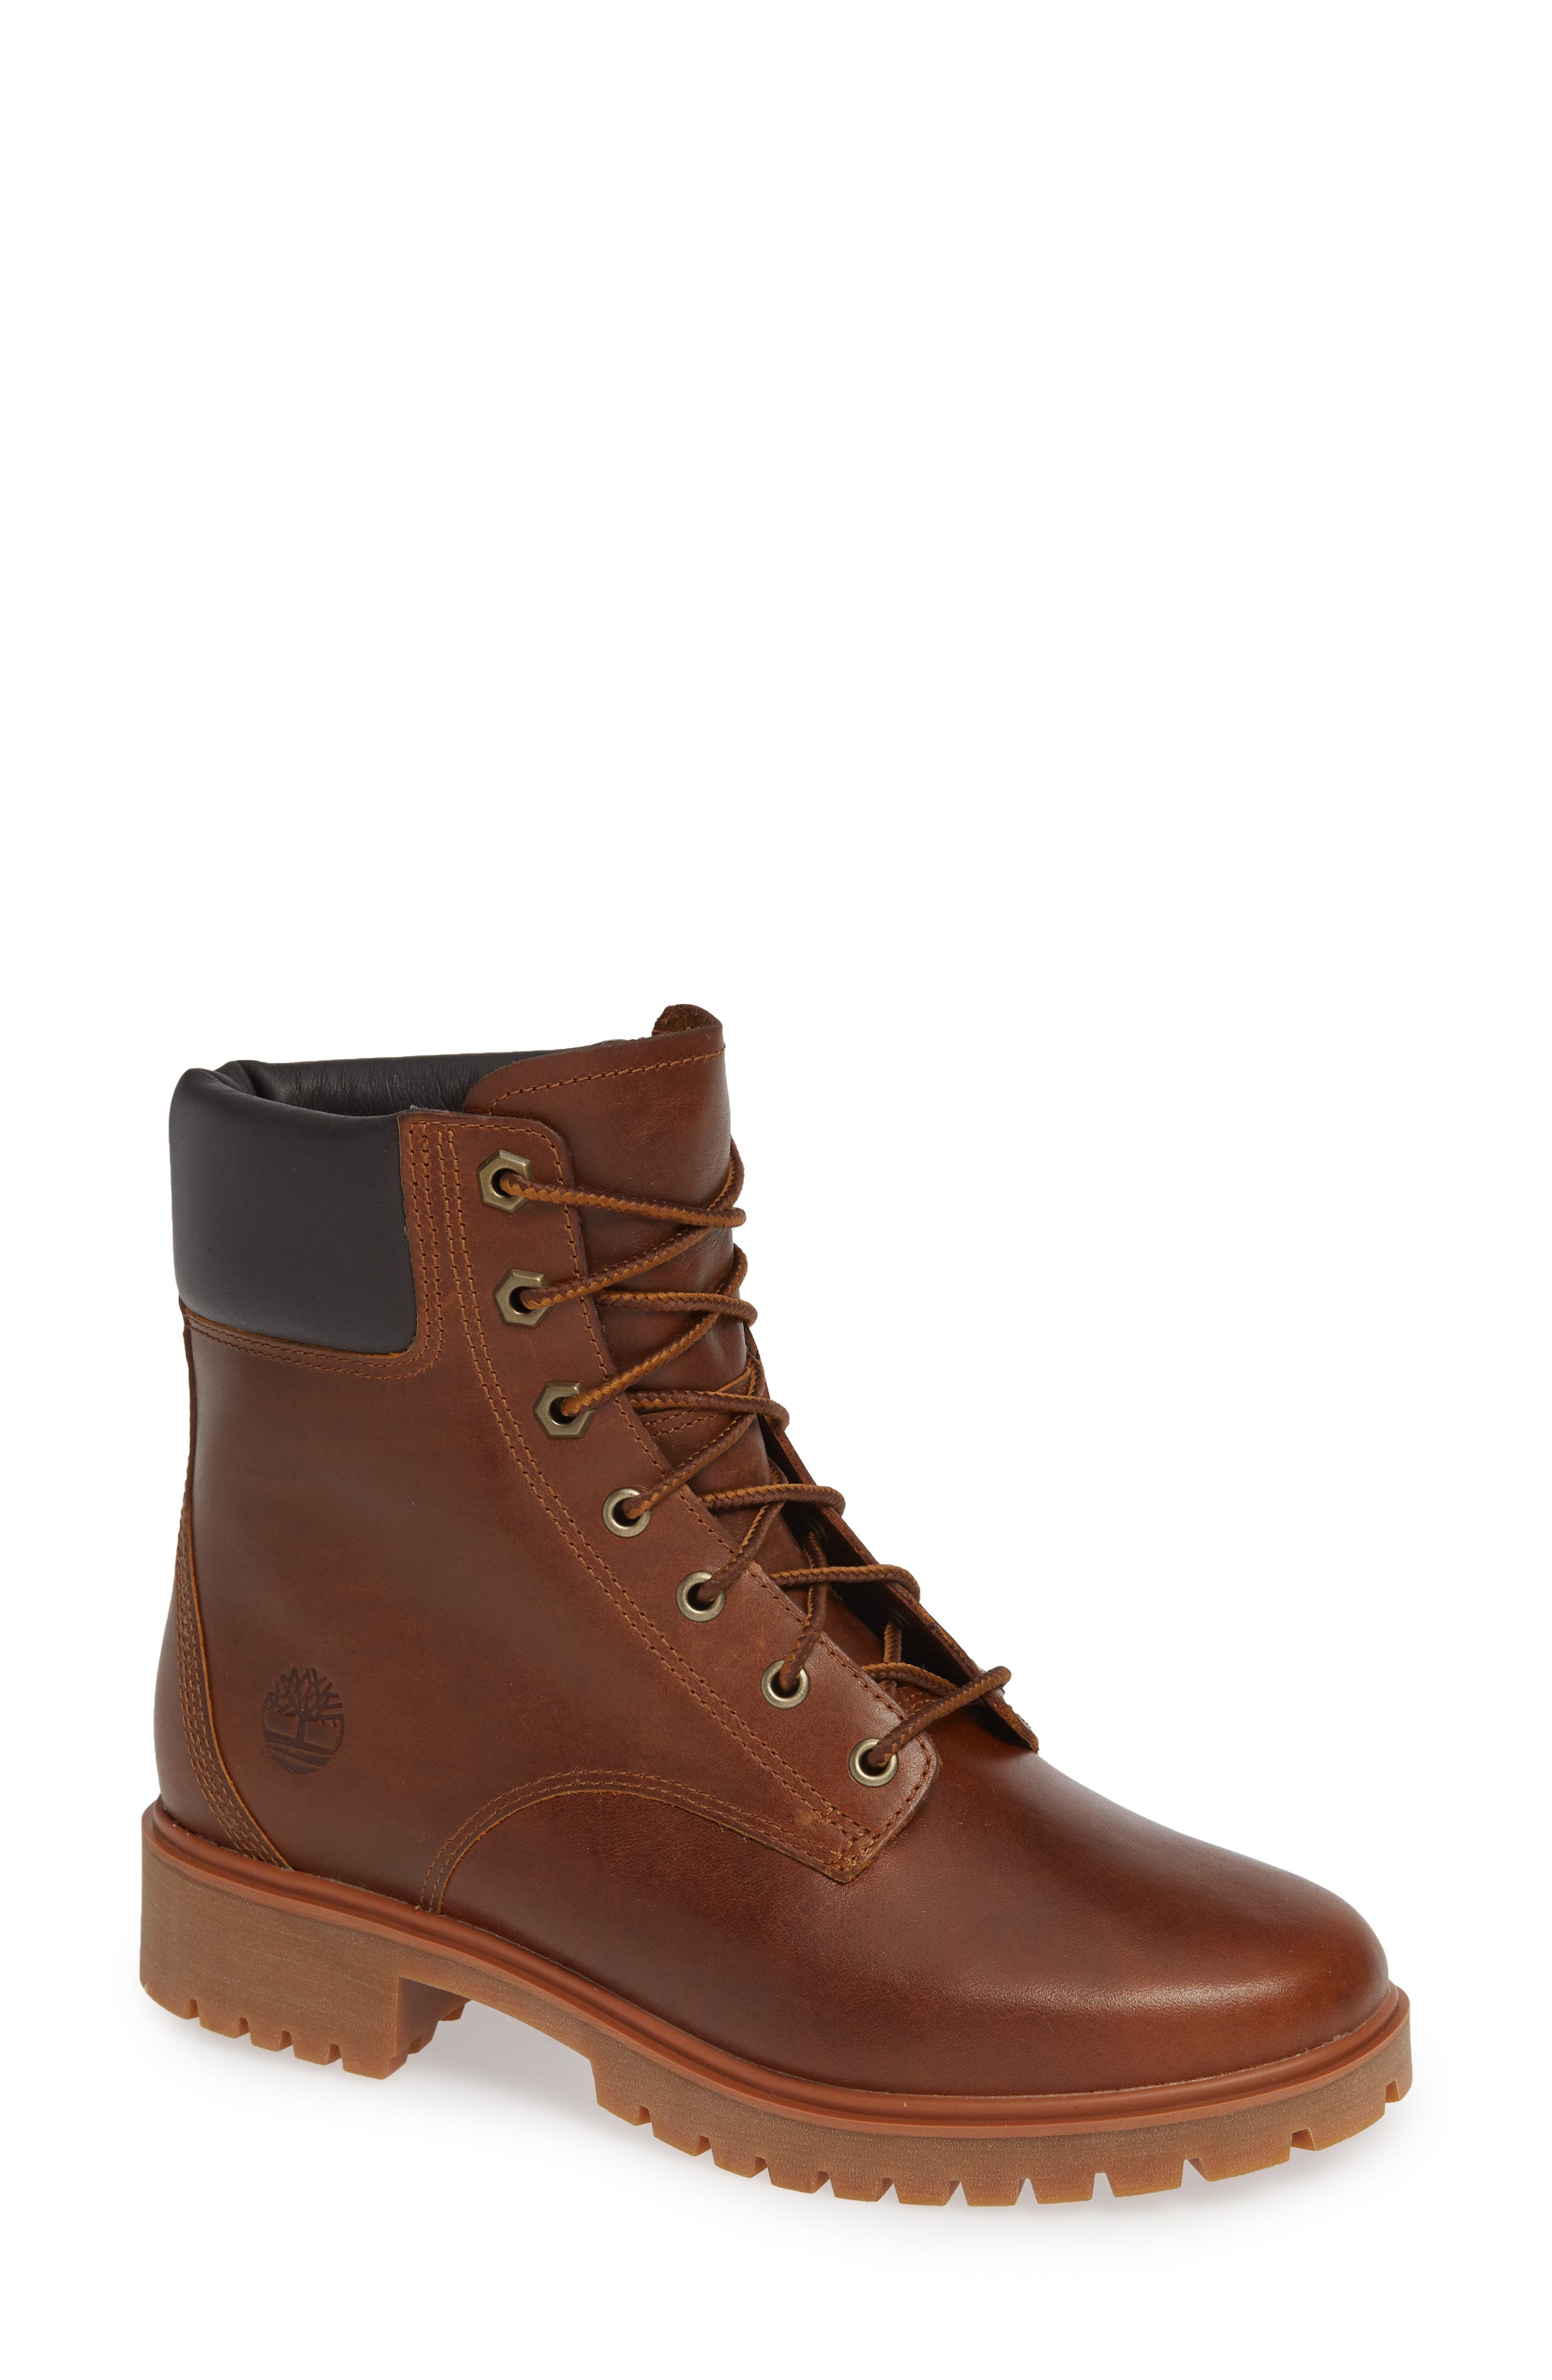 Timberland Jayne Waterproof Hiking Bootie, Brown